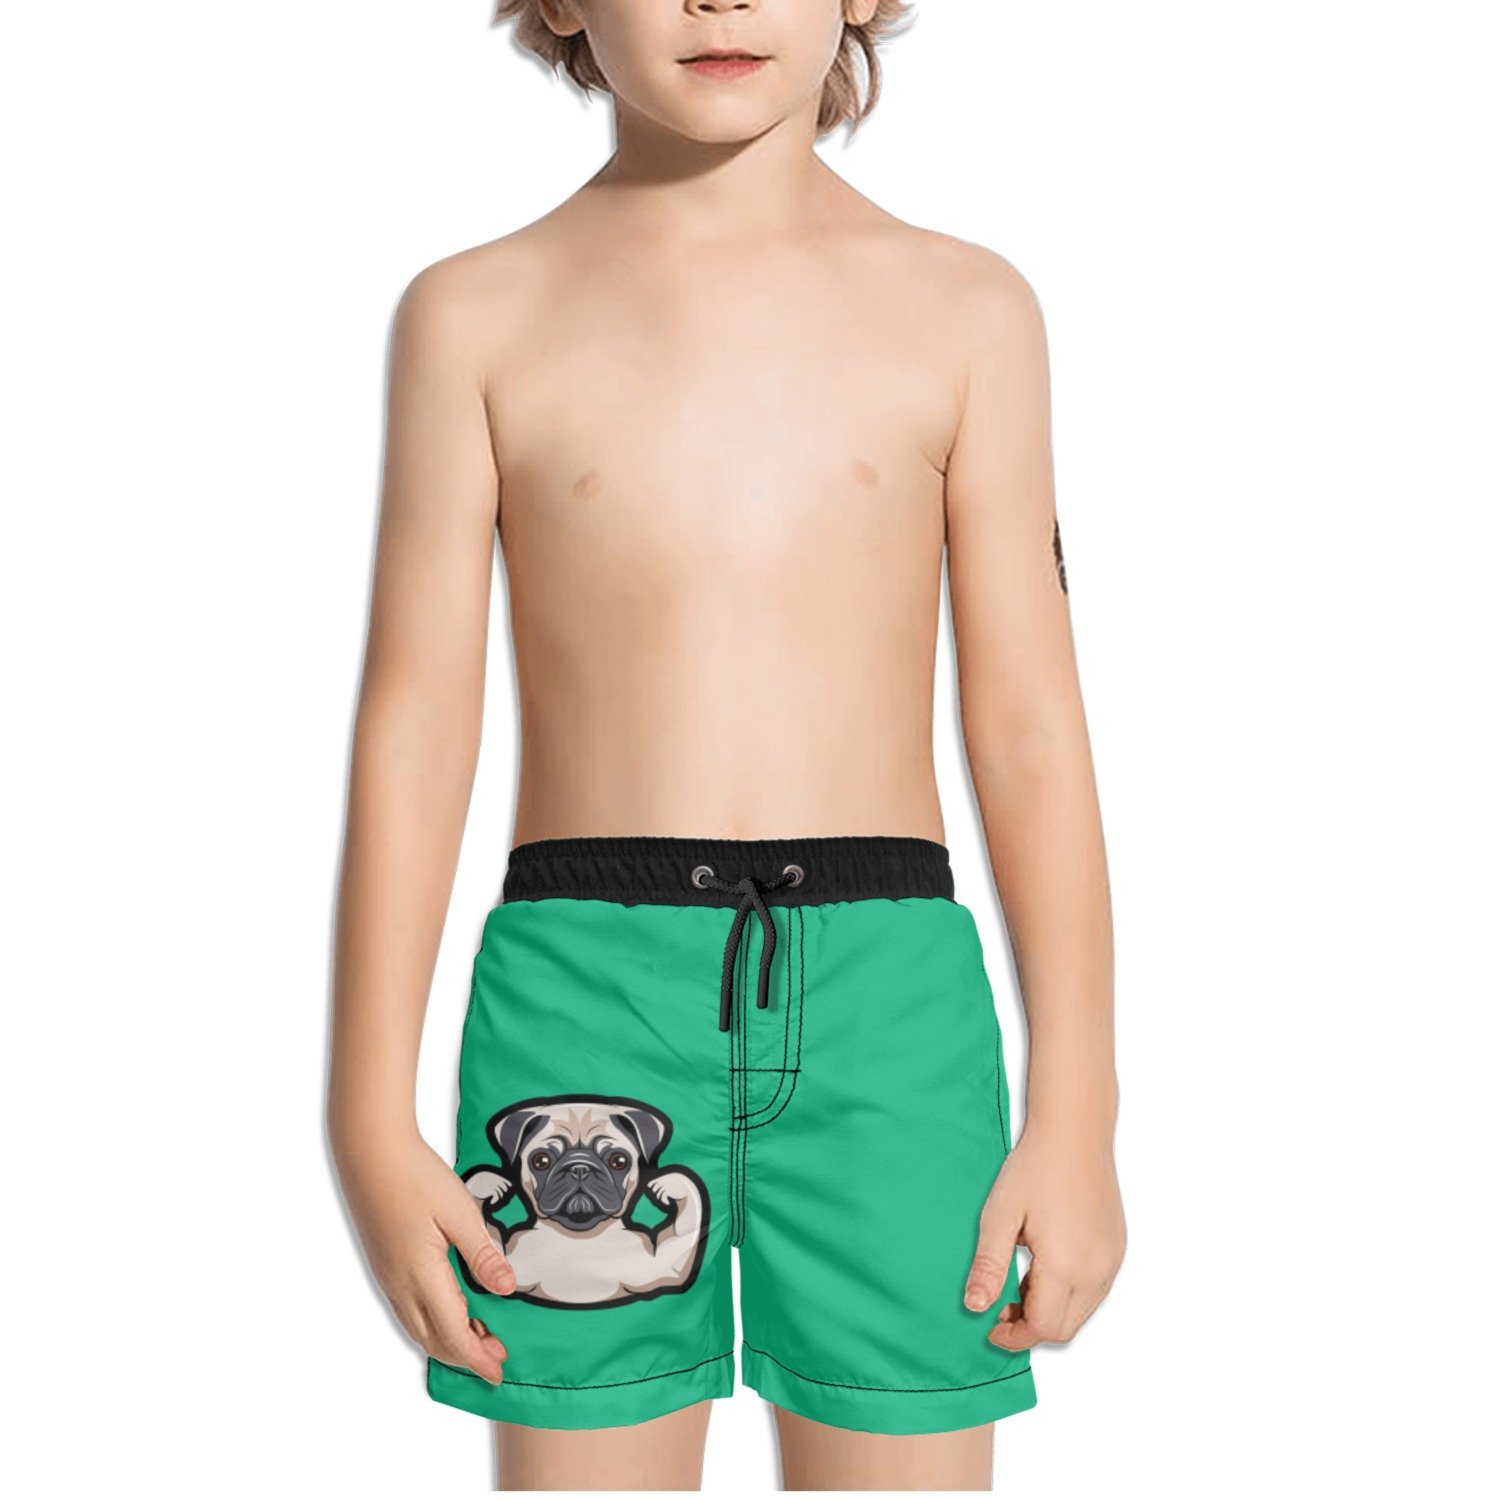 Juliuse Marthar Pug Funny Dog with Musculs Green Swim Trunks Quick Dry Beach Board Shorts for Boys